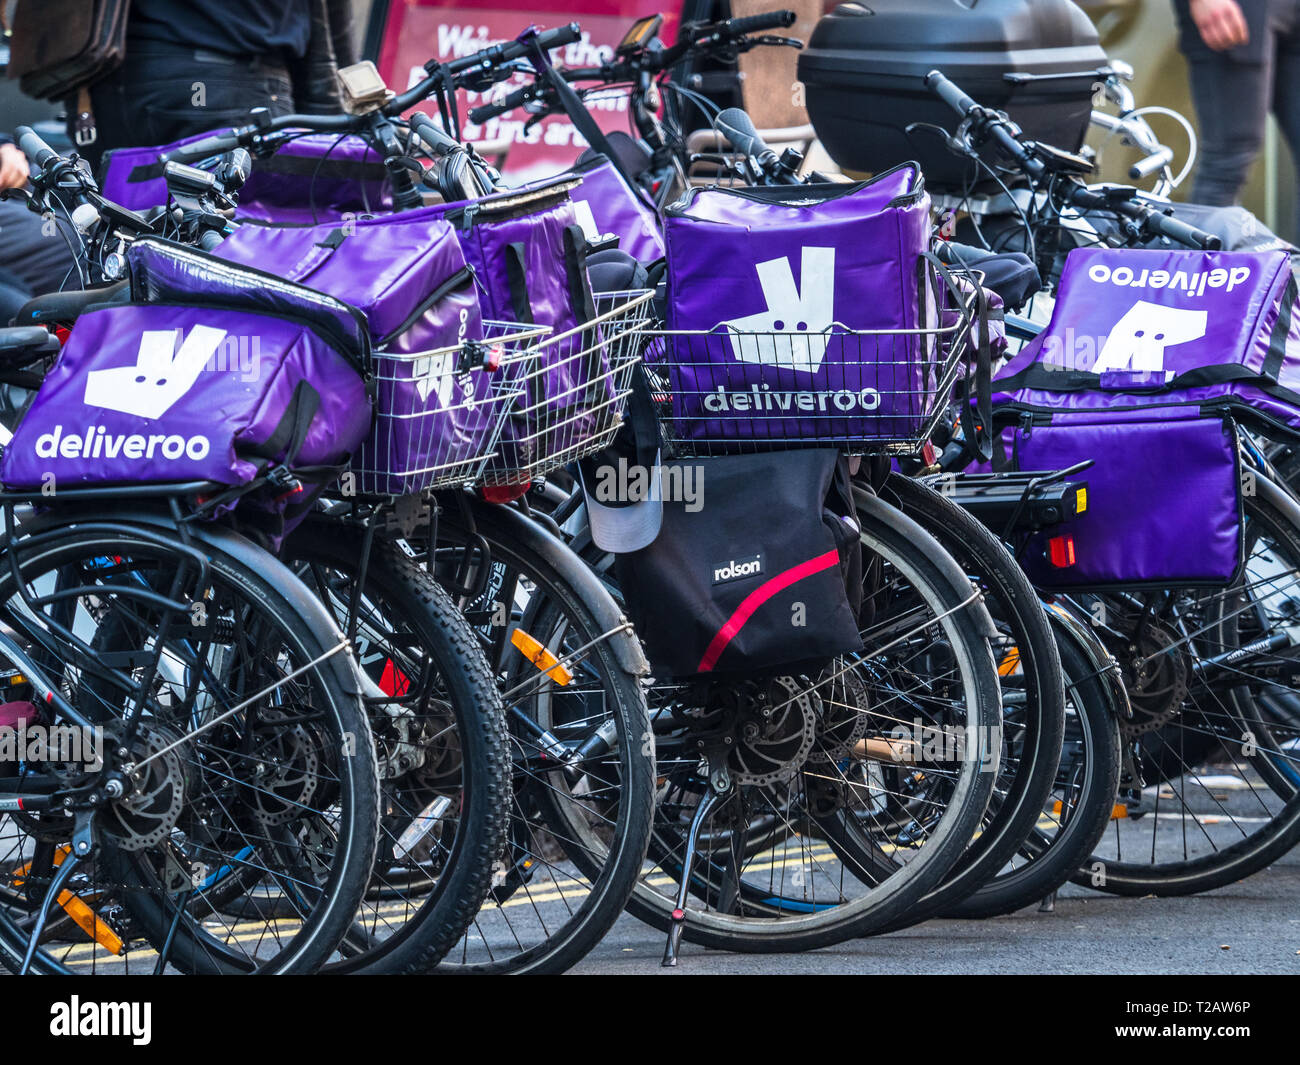 2441d201d0a Deliveroo Food Delivery Courier Bikes parked up in Central London ...